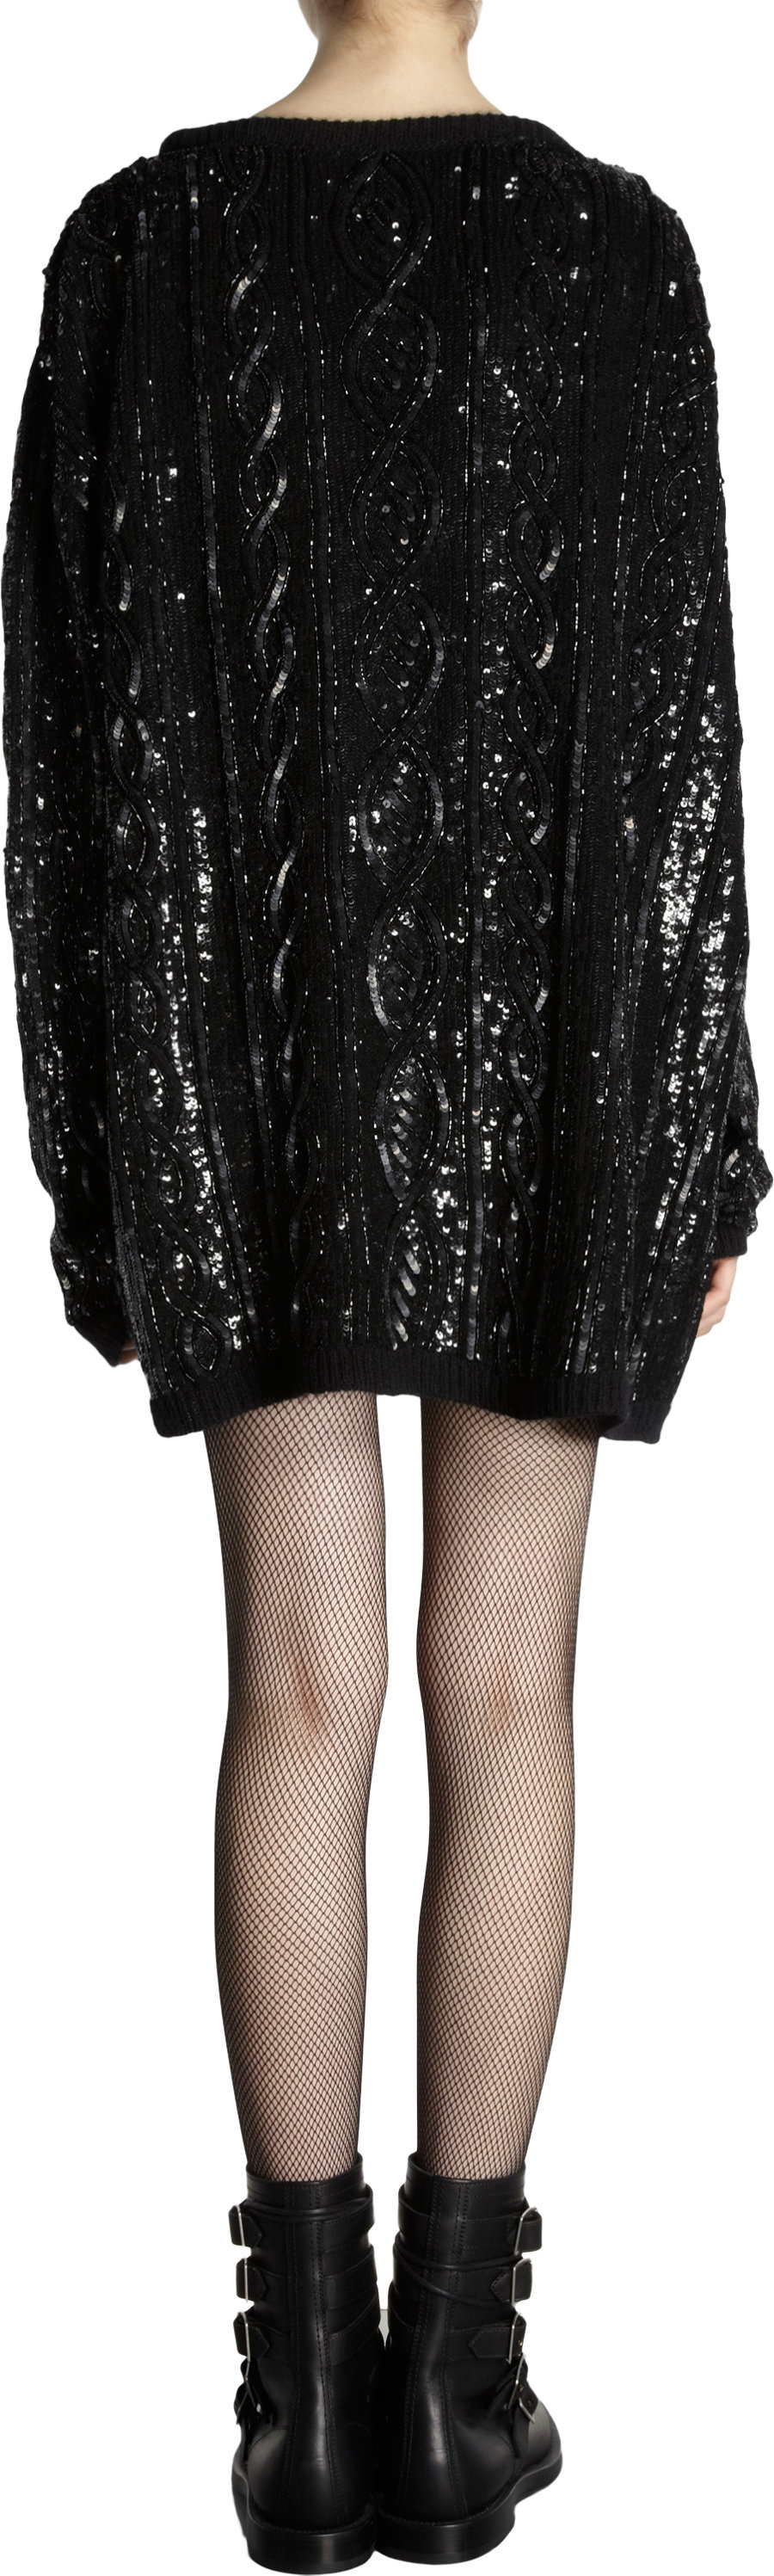 Saint laurent Sequin Embelished Oversized Cable Knit Sweater in ...